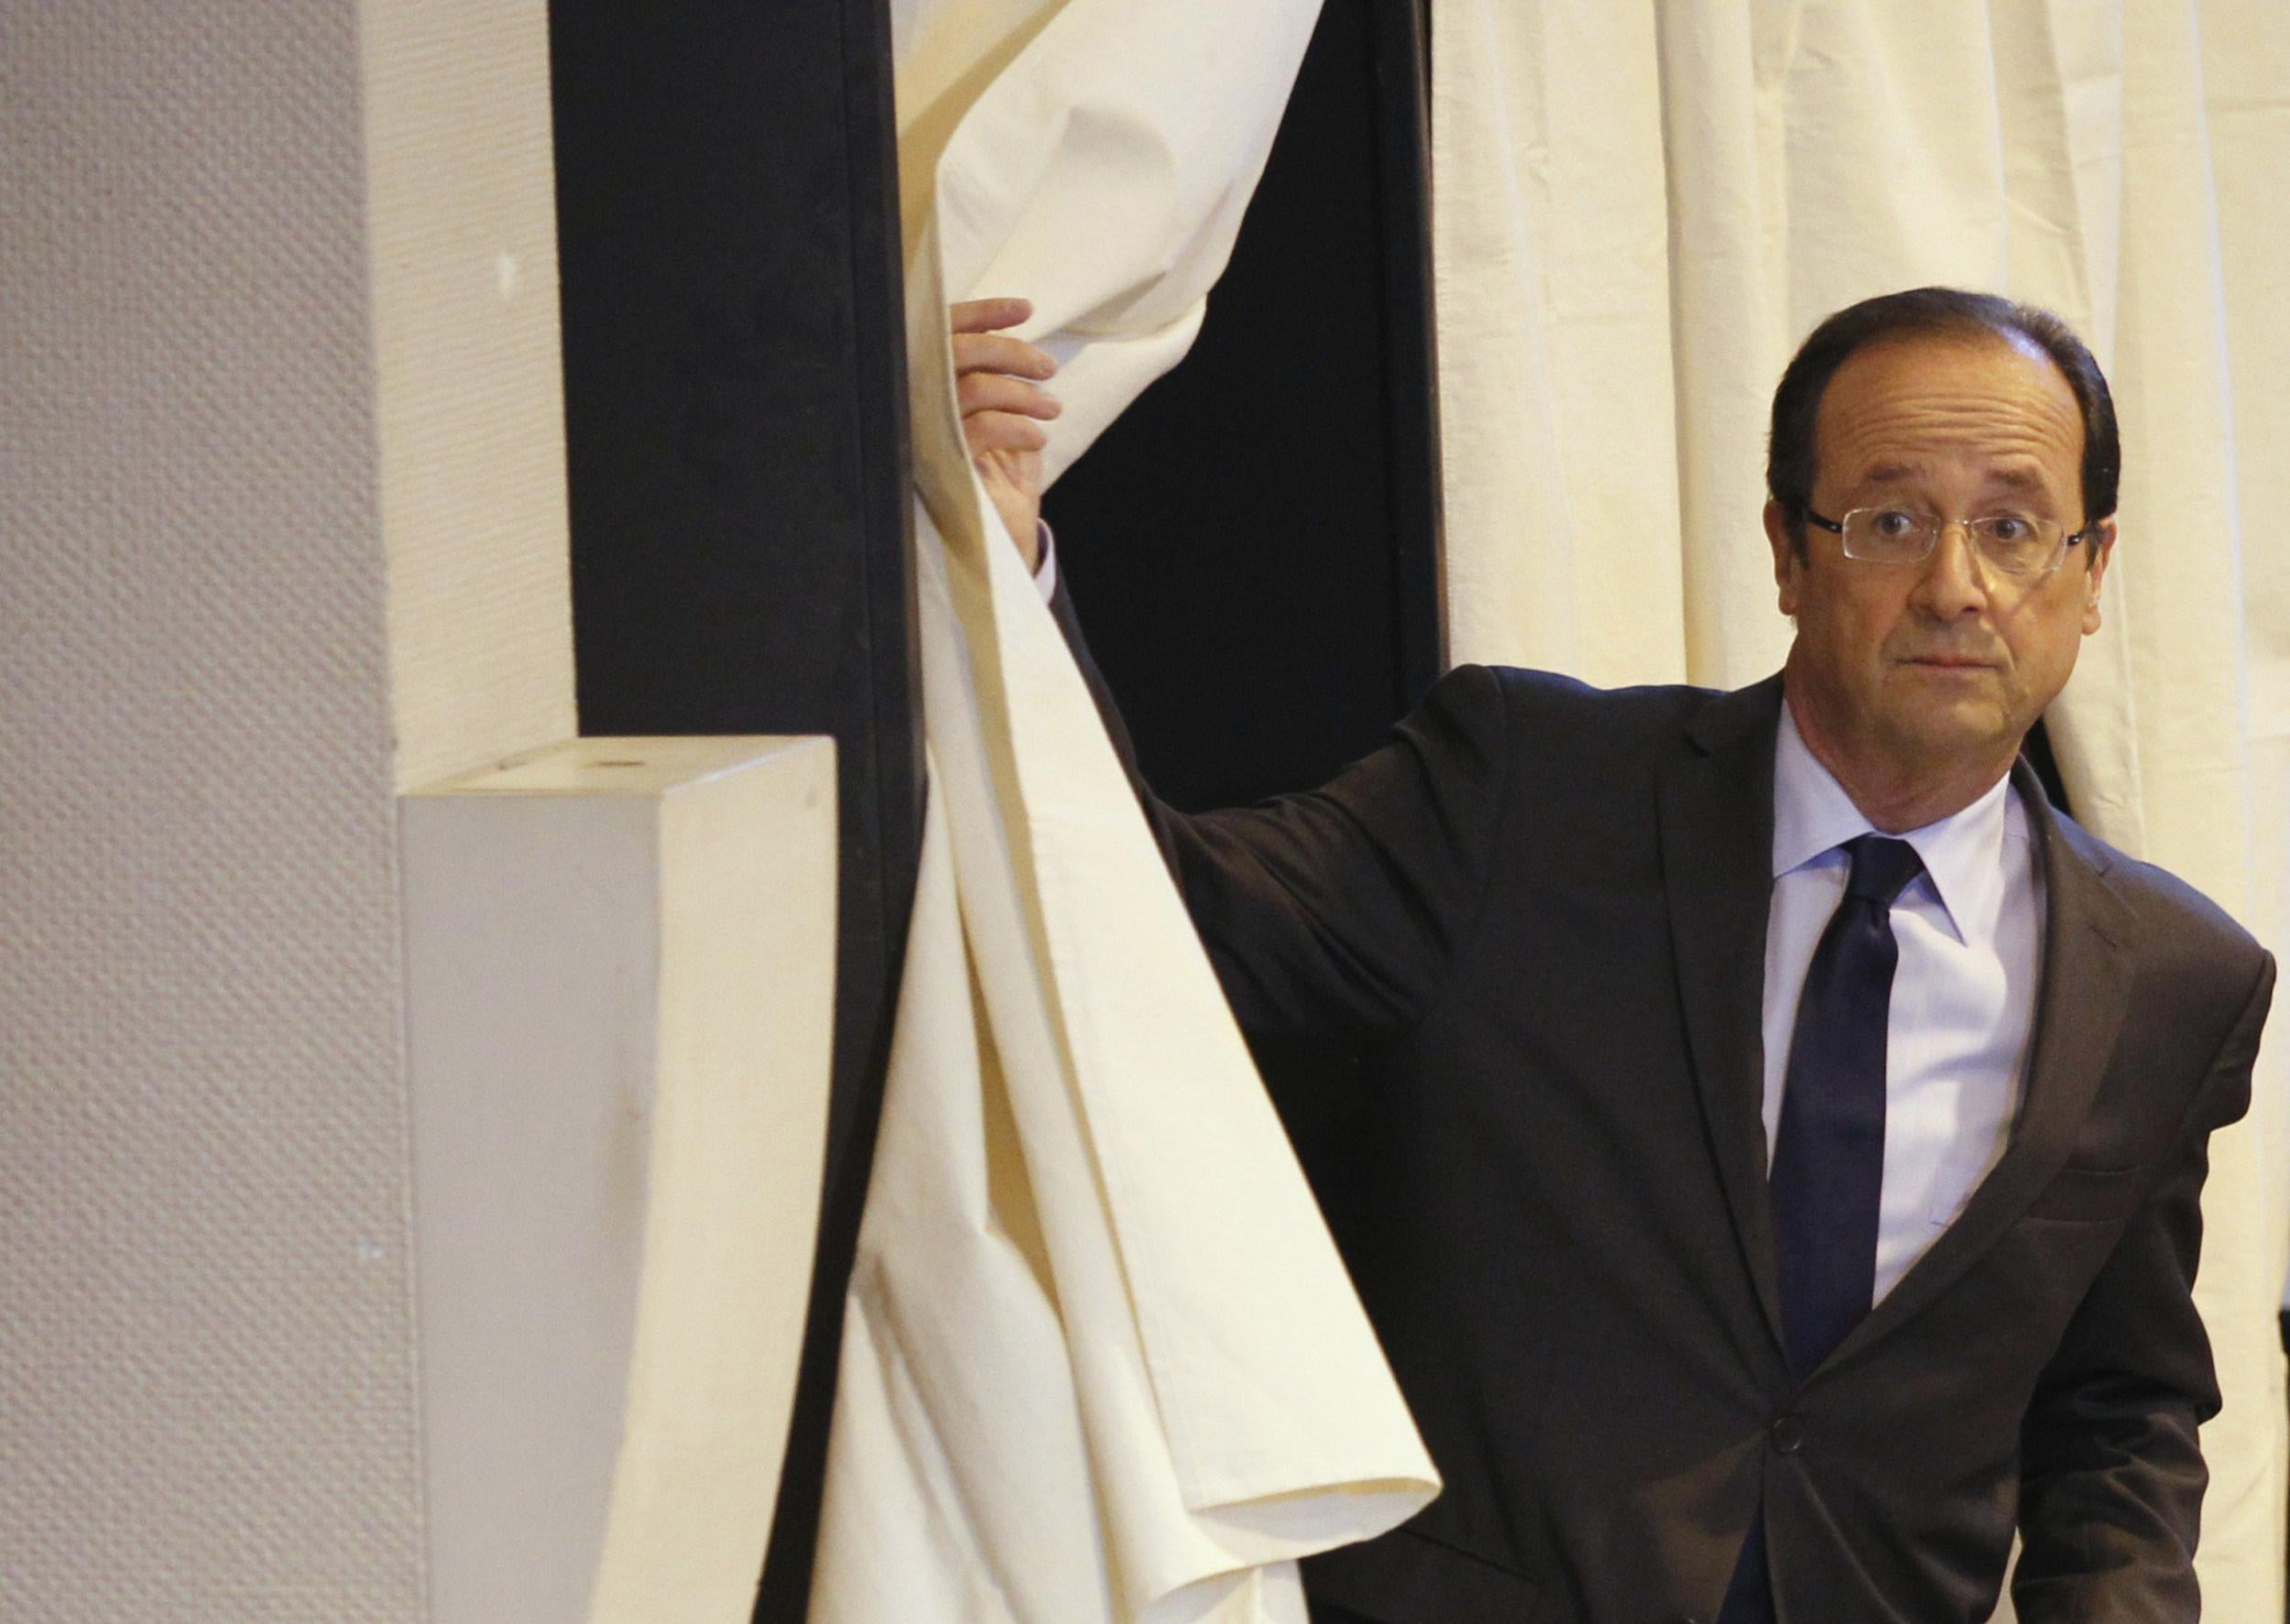 François Hollande votes in Tulle, France